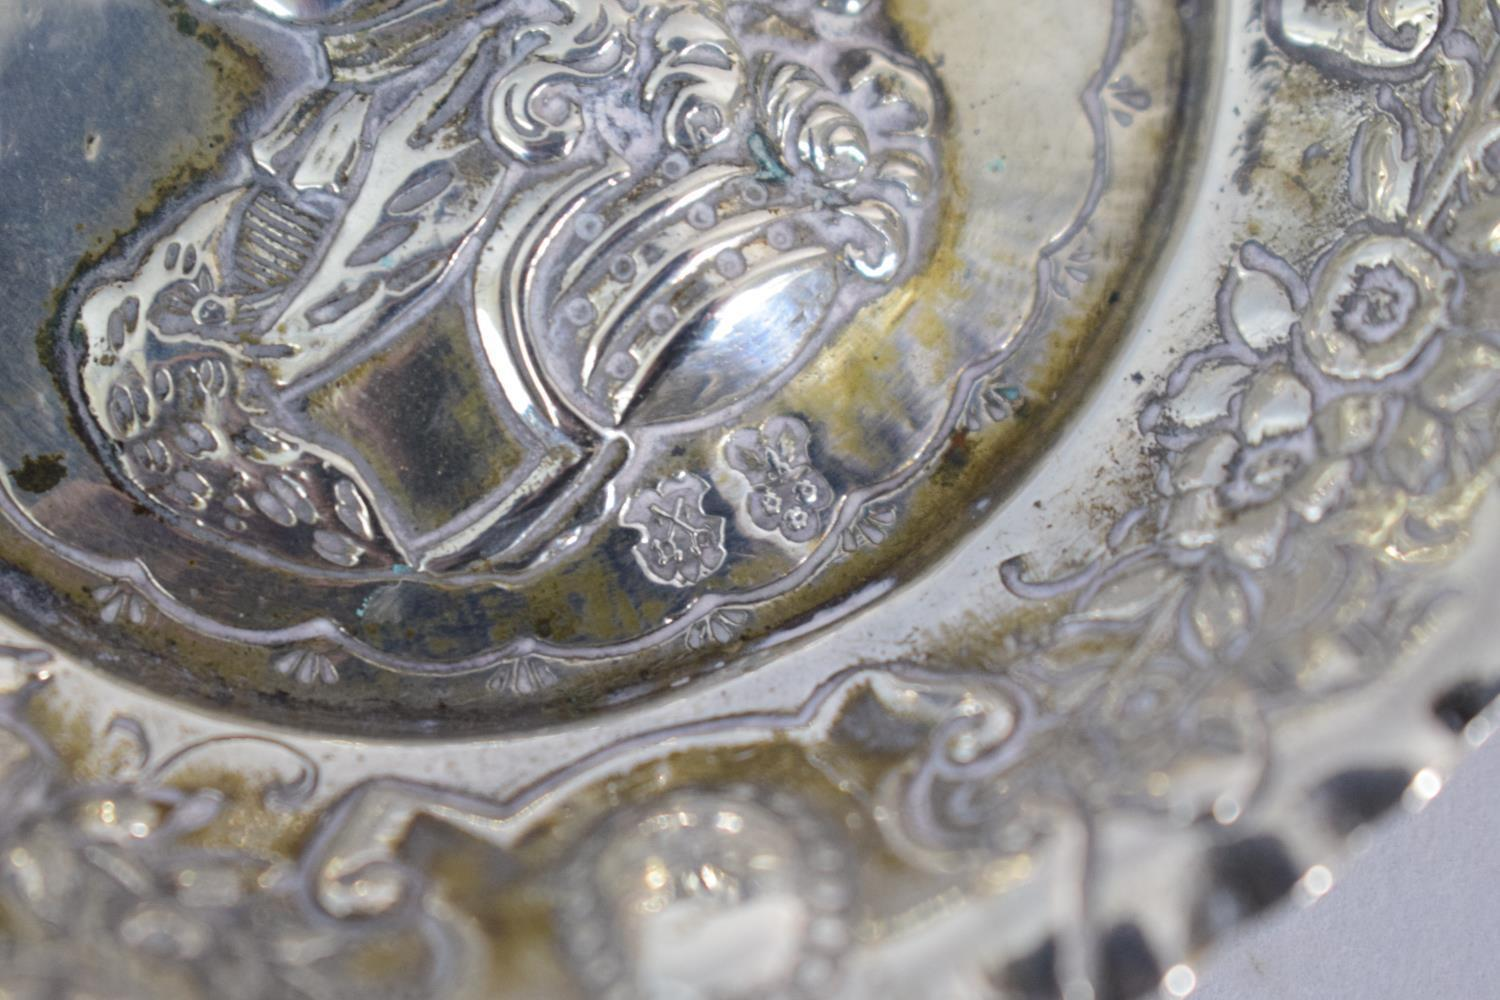 Lot 186 - An Austro-Hungarian Silver Wine Taster Decorated with the Bust of Louis I of Hungary and